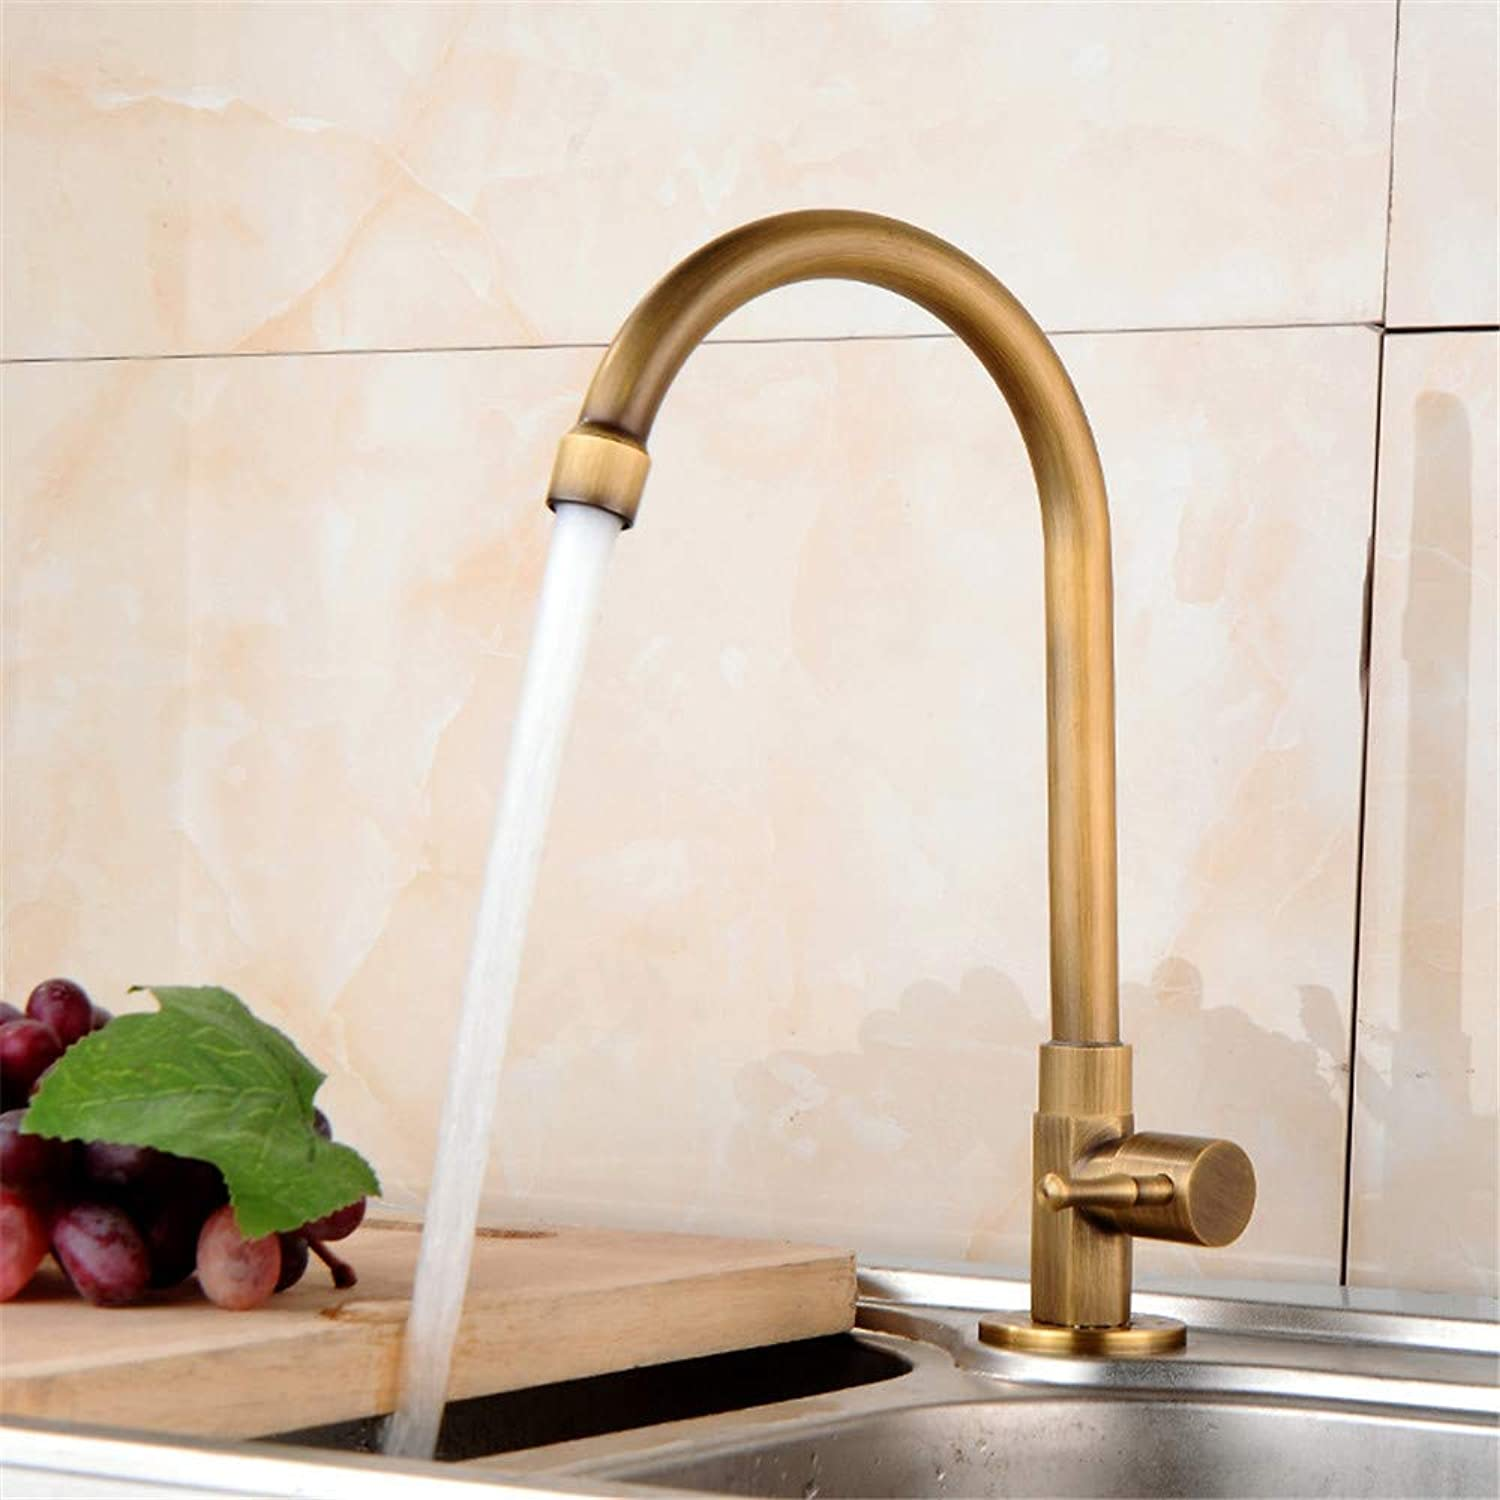 Oudan Antique Kitchen Faucet Full Copper Single Cold Faucet Joint redatably Vegetables Basin Sink Faucet Wash Basin (color   -, Size   -)